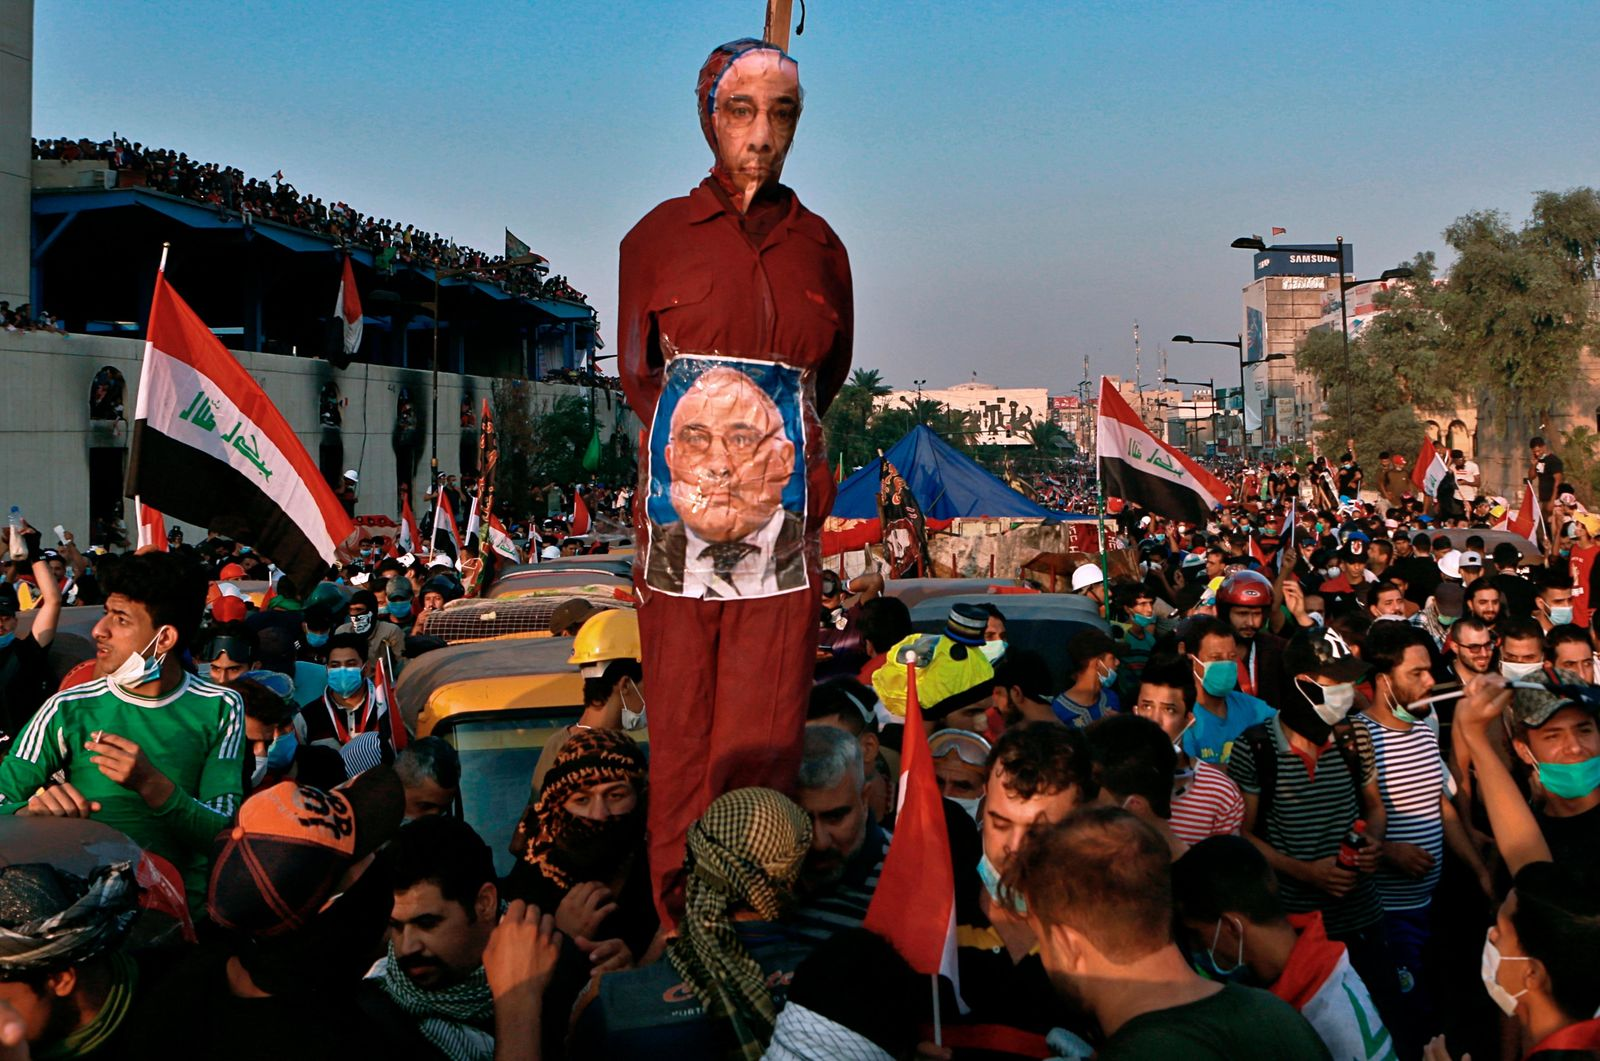 FILE - in this Wednesday, Oct. 30, 2019 file photo, Anti-government protesters hold an effigy of Iraqi Prime Minister Adel Abdel-Mahdi during ongoing protests in Baghdad, Iraq. Celebrations have erupted in Iraq's Tahrir Square, Friday, Nov. 29, where anti-government protesters have been camped out for nearly two months following an announcement by Iraqi Prime Minister Adel Abdul-Mahdi, would be resigning. (AP Photo/Khalid Mohammed, File)